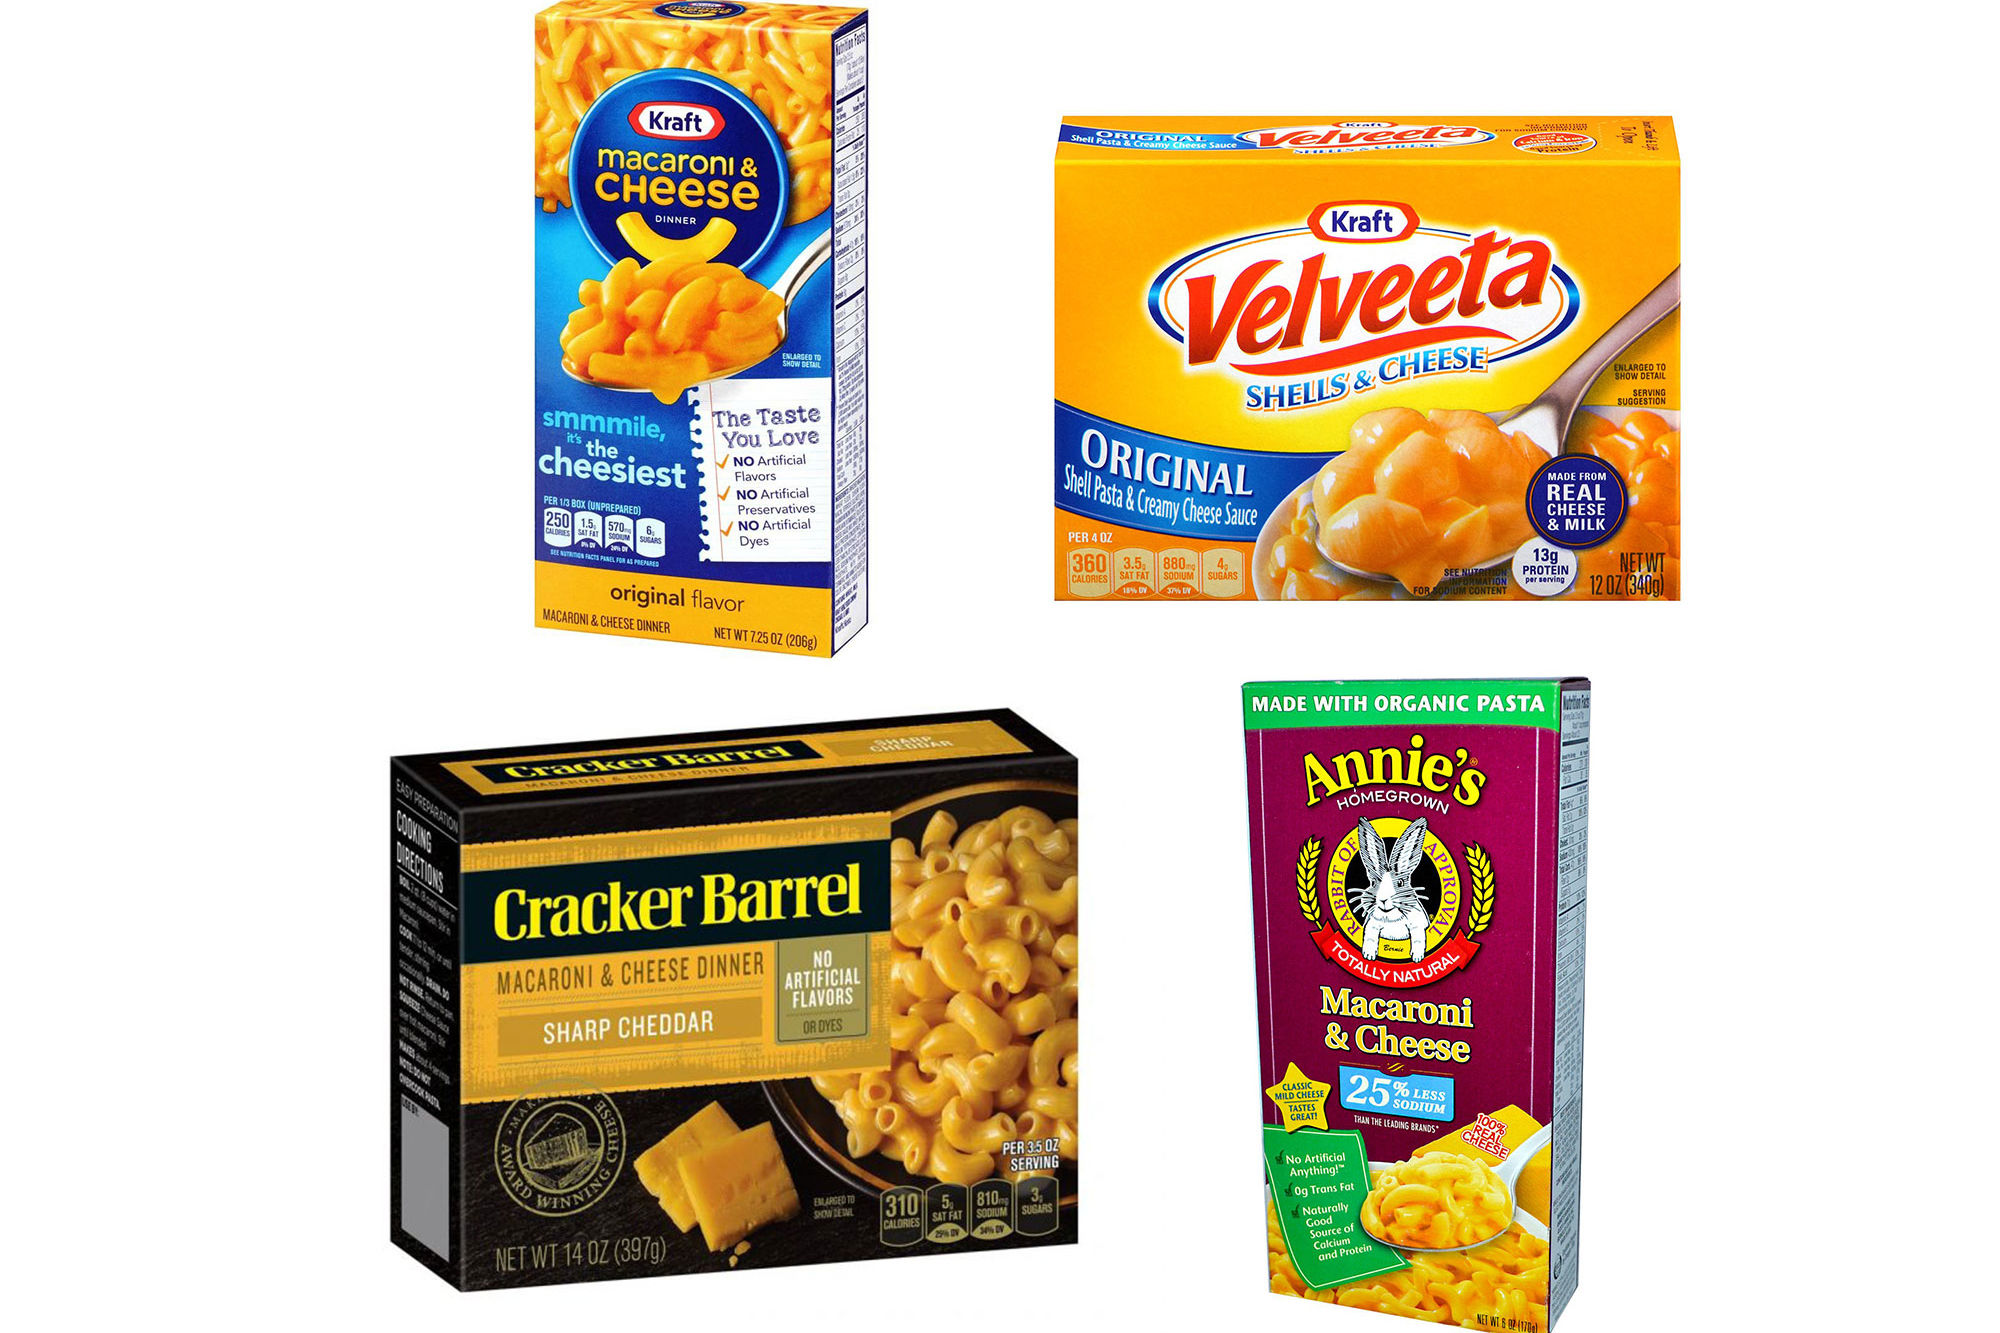 Our Editors Blind Taste-Tested Boxed Macaroni & Cheese and Finally Found the Best